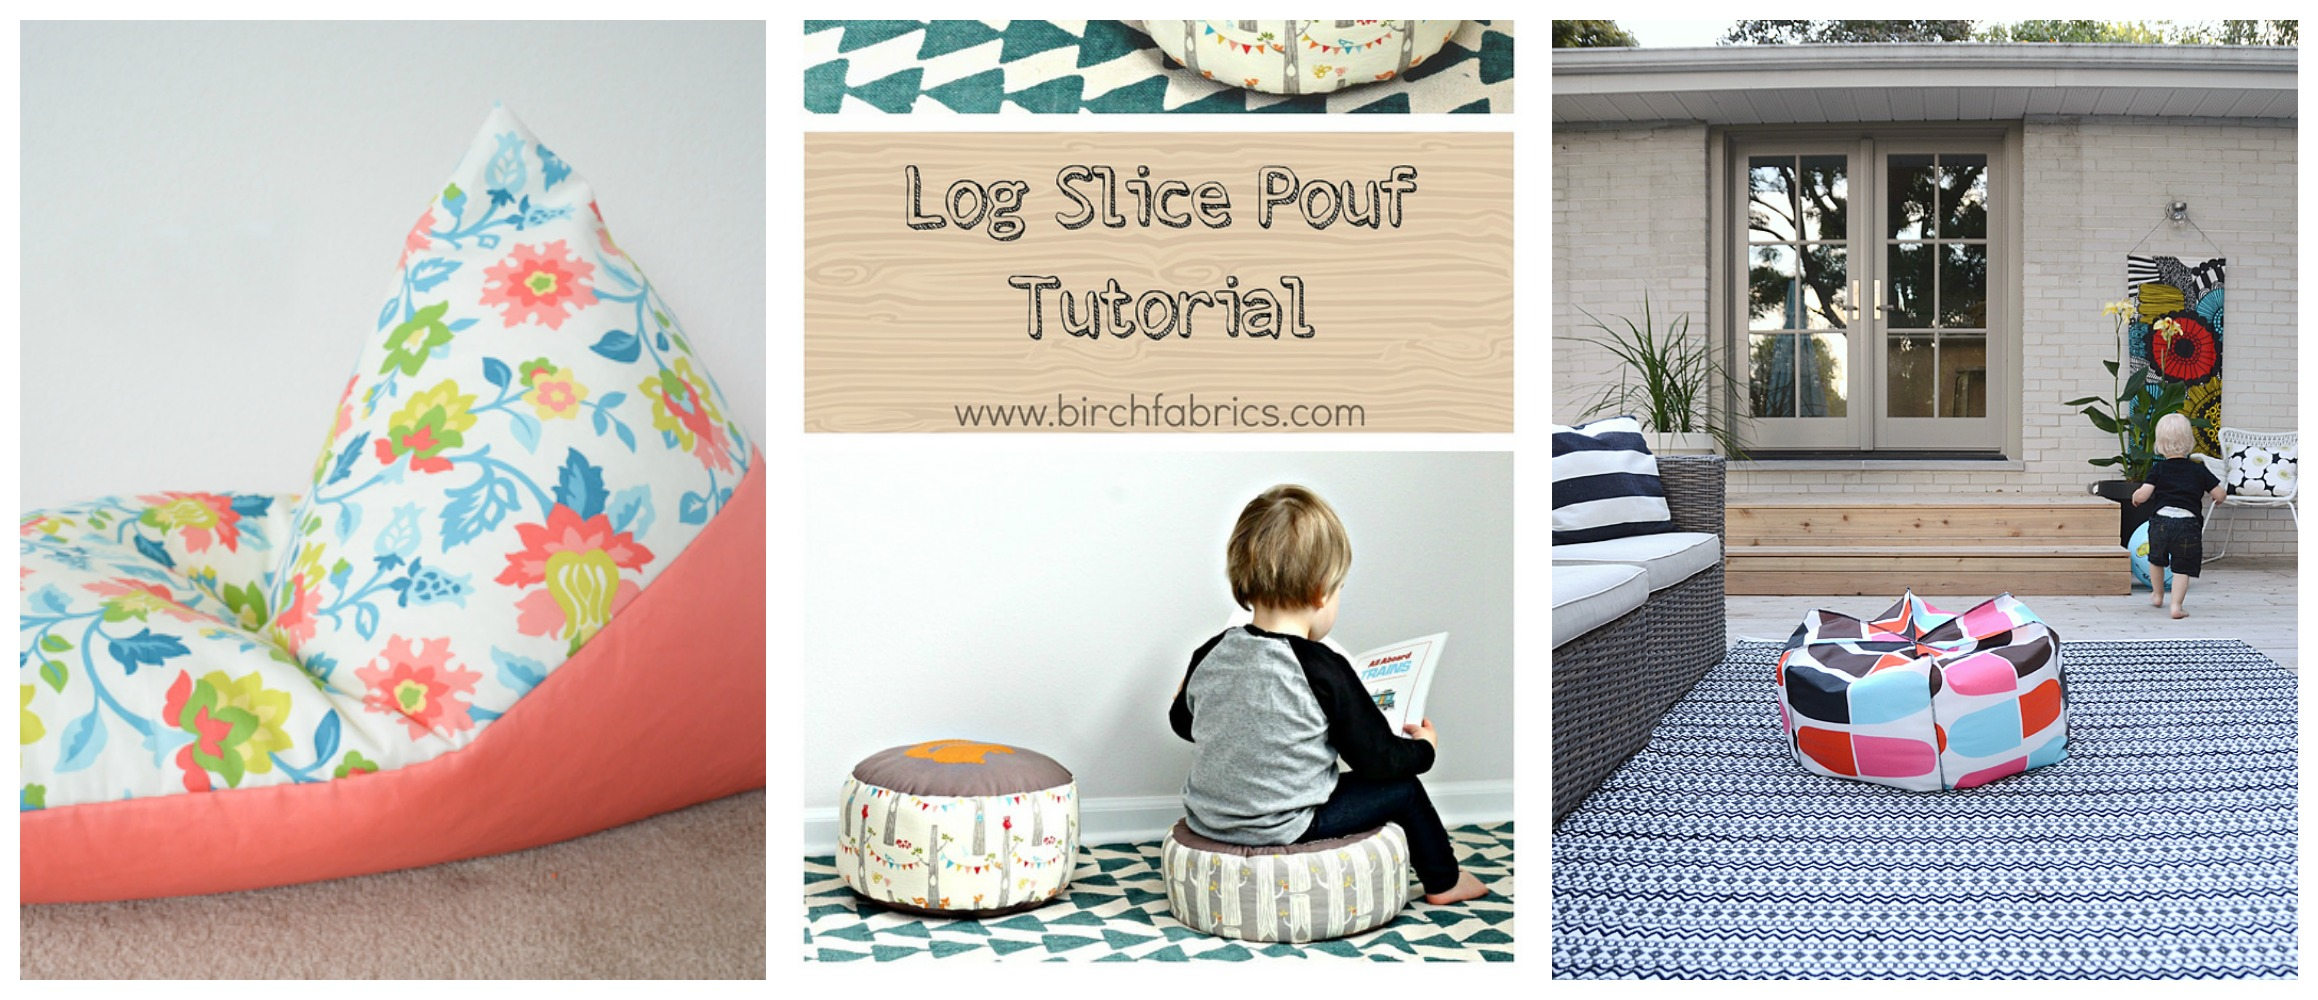 Stupendous 6 Diy Kids Bean Bags And Kids Poufs Diy Thought Gmtry Best Dining Table And Chair Ideas Images Gmtryco